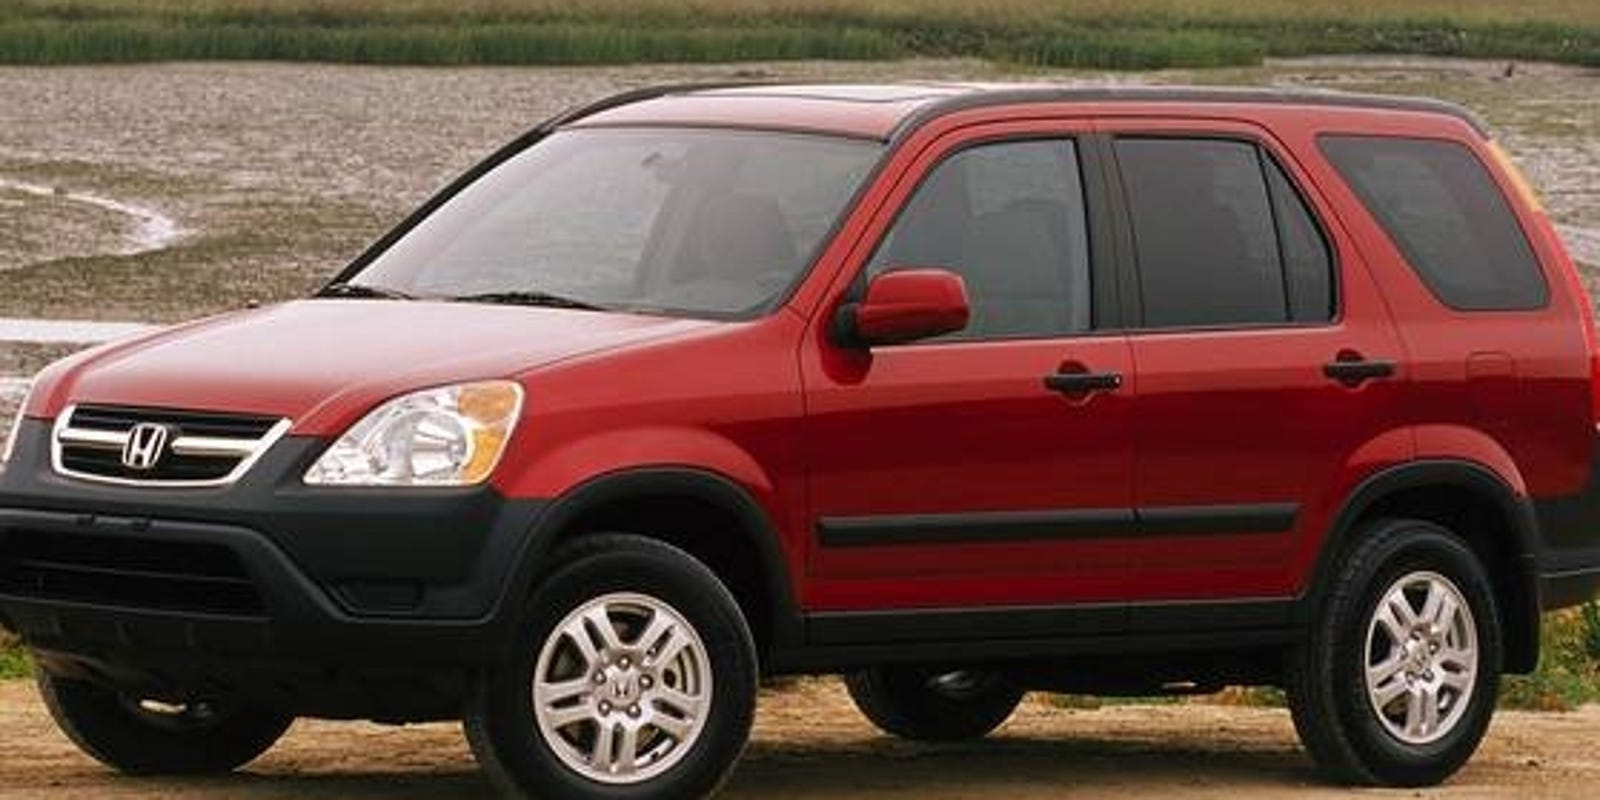 Honda recalls 2002 2006 cr v for fire risk for Honda crv usa